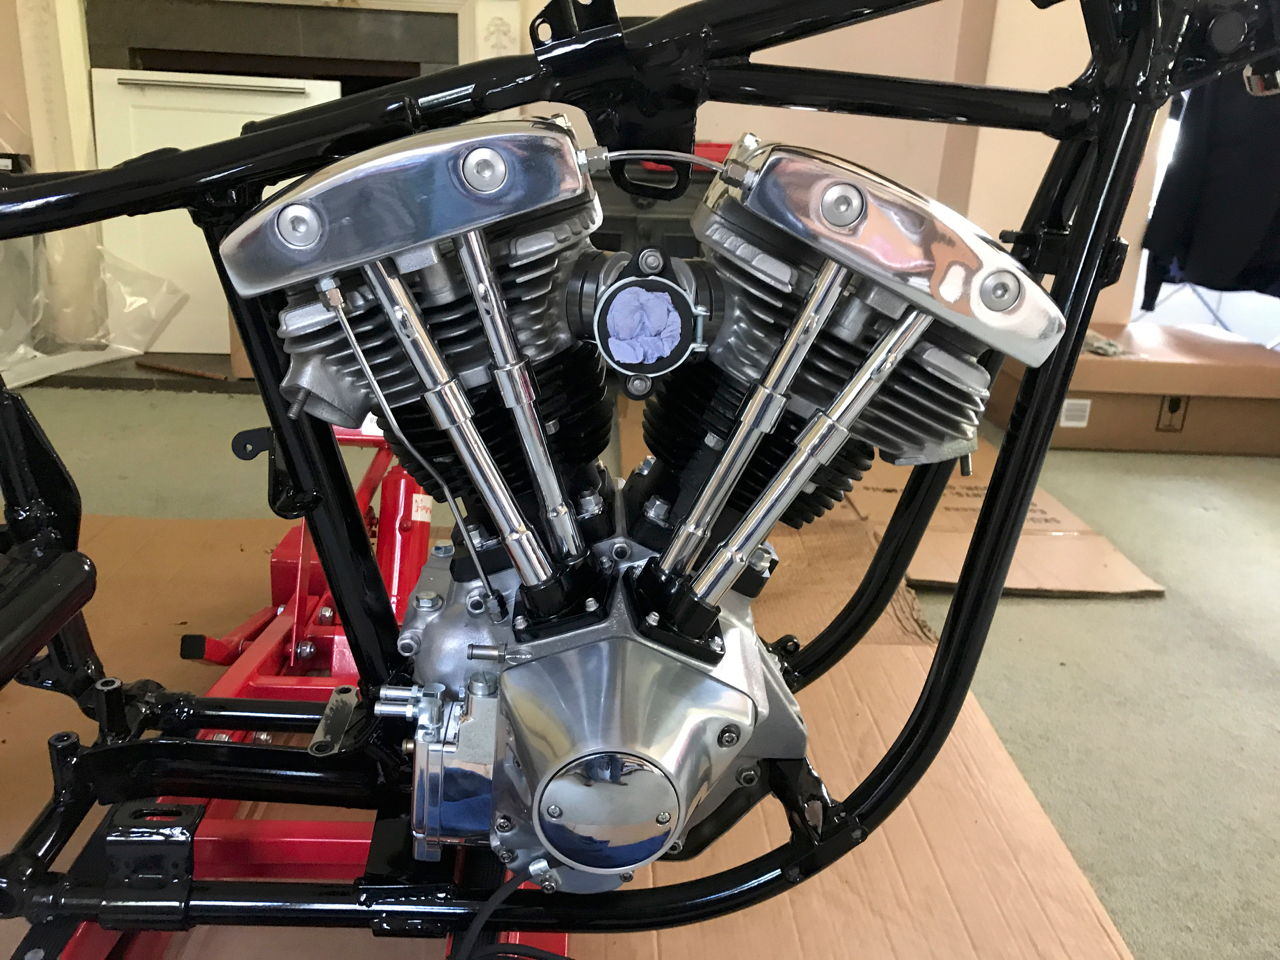 91 Flhs Wiring Dash also Ultima Fuse Box further 1966 Barracuda Engine Options Wiring Diagrams in addition 1963 Panhead Wiring Diagram likewise 82 Harley Davidson Wiring Diagram. on 1964 flh wiring diagram